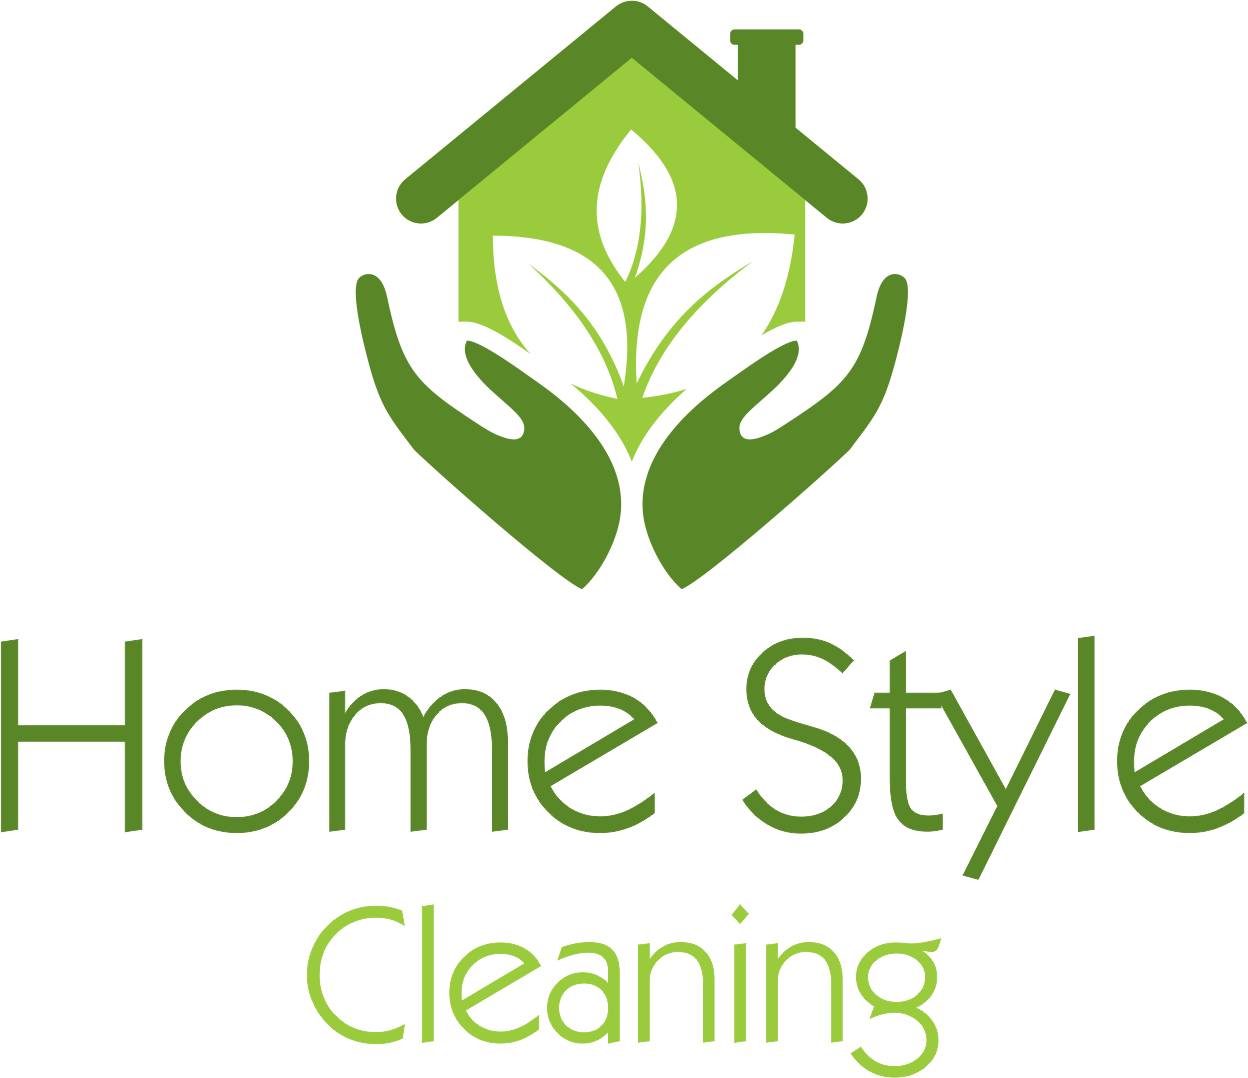 Home Style Cleaning